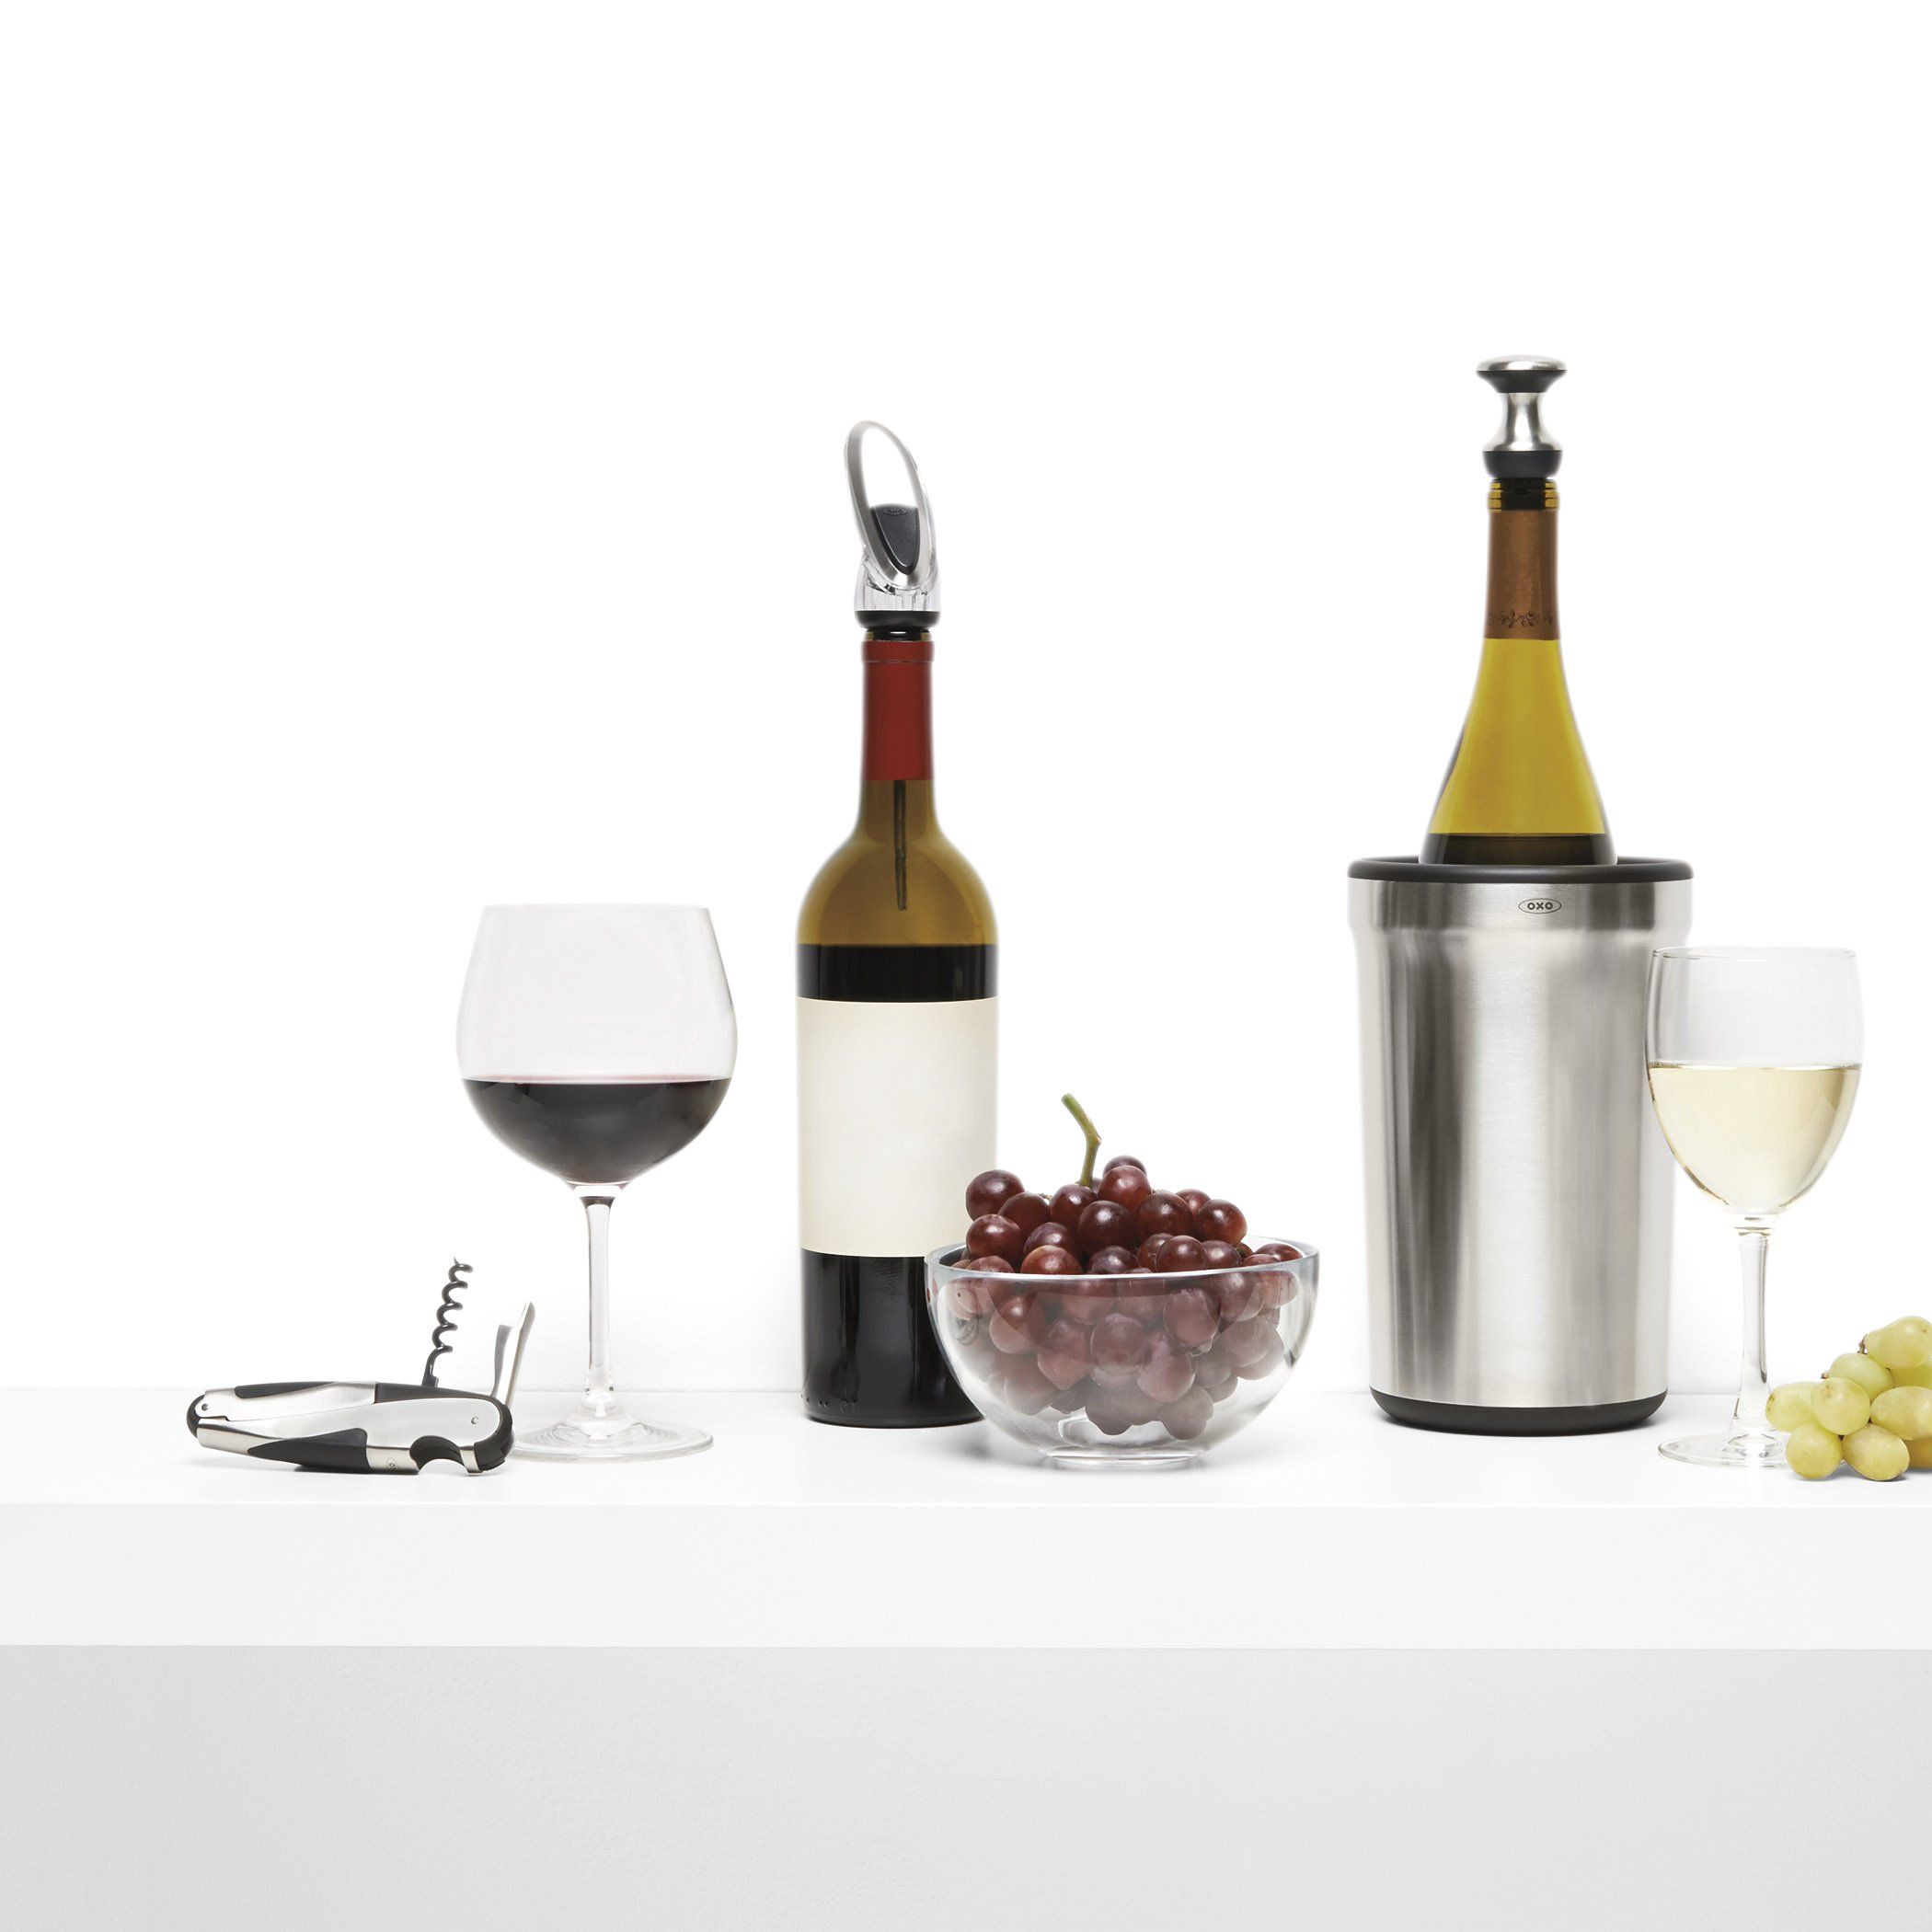 OXO 11136400 Wine Stopper and Pourer, Stainless Steel by OXO (Image #5)